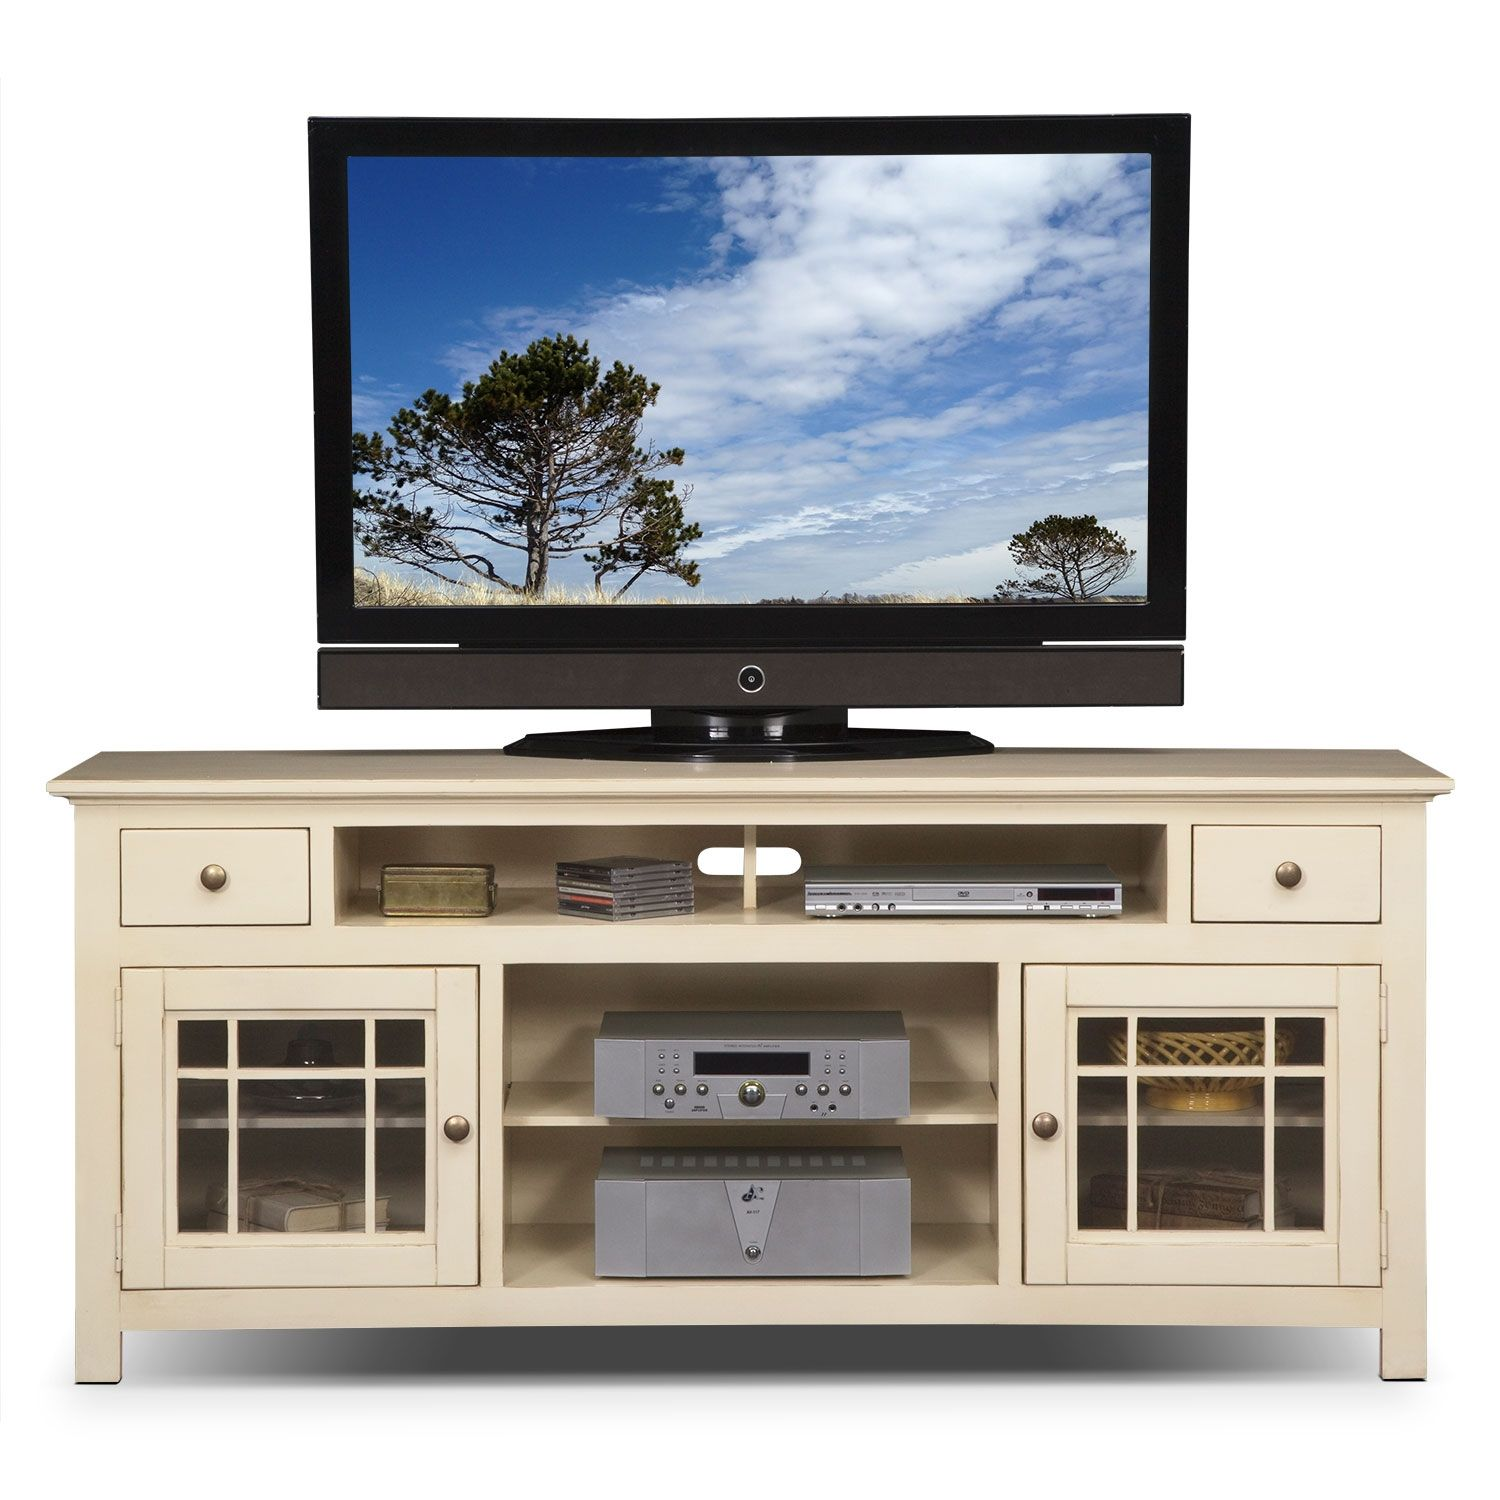 the lite full enterprise tv uncategorized size contemporary stand in inch white of fireplace greatest within